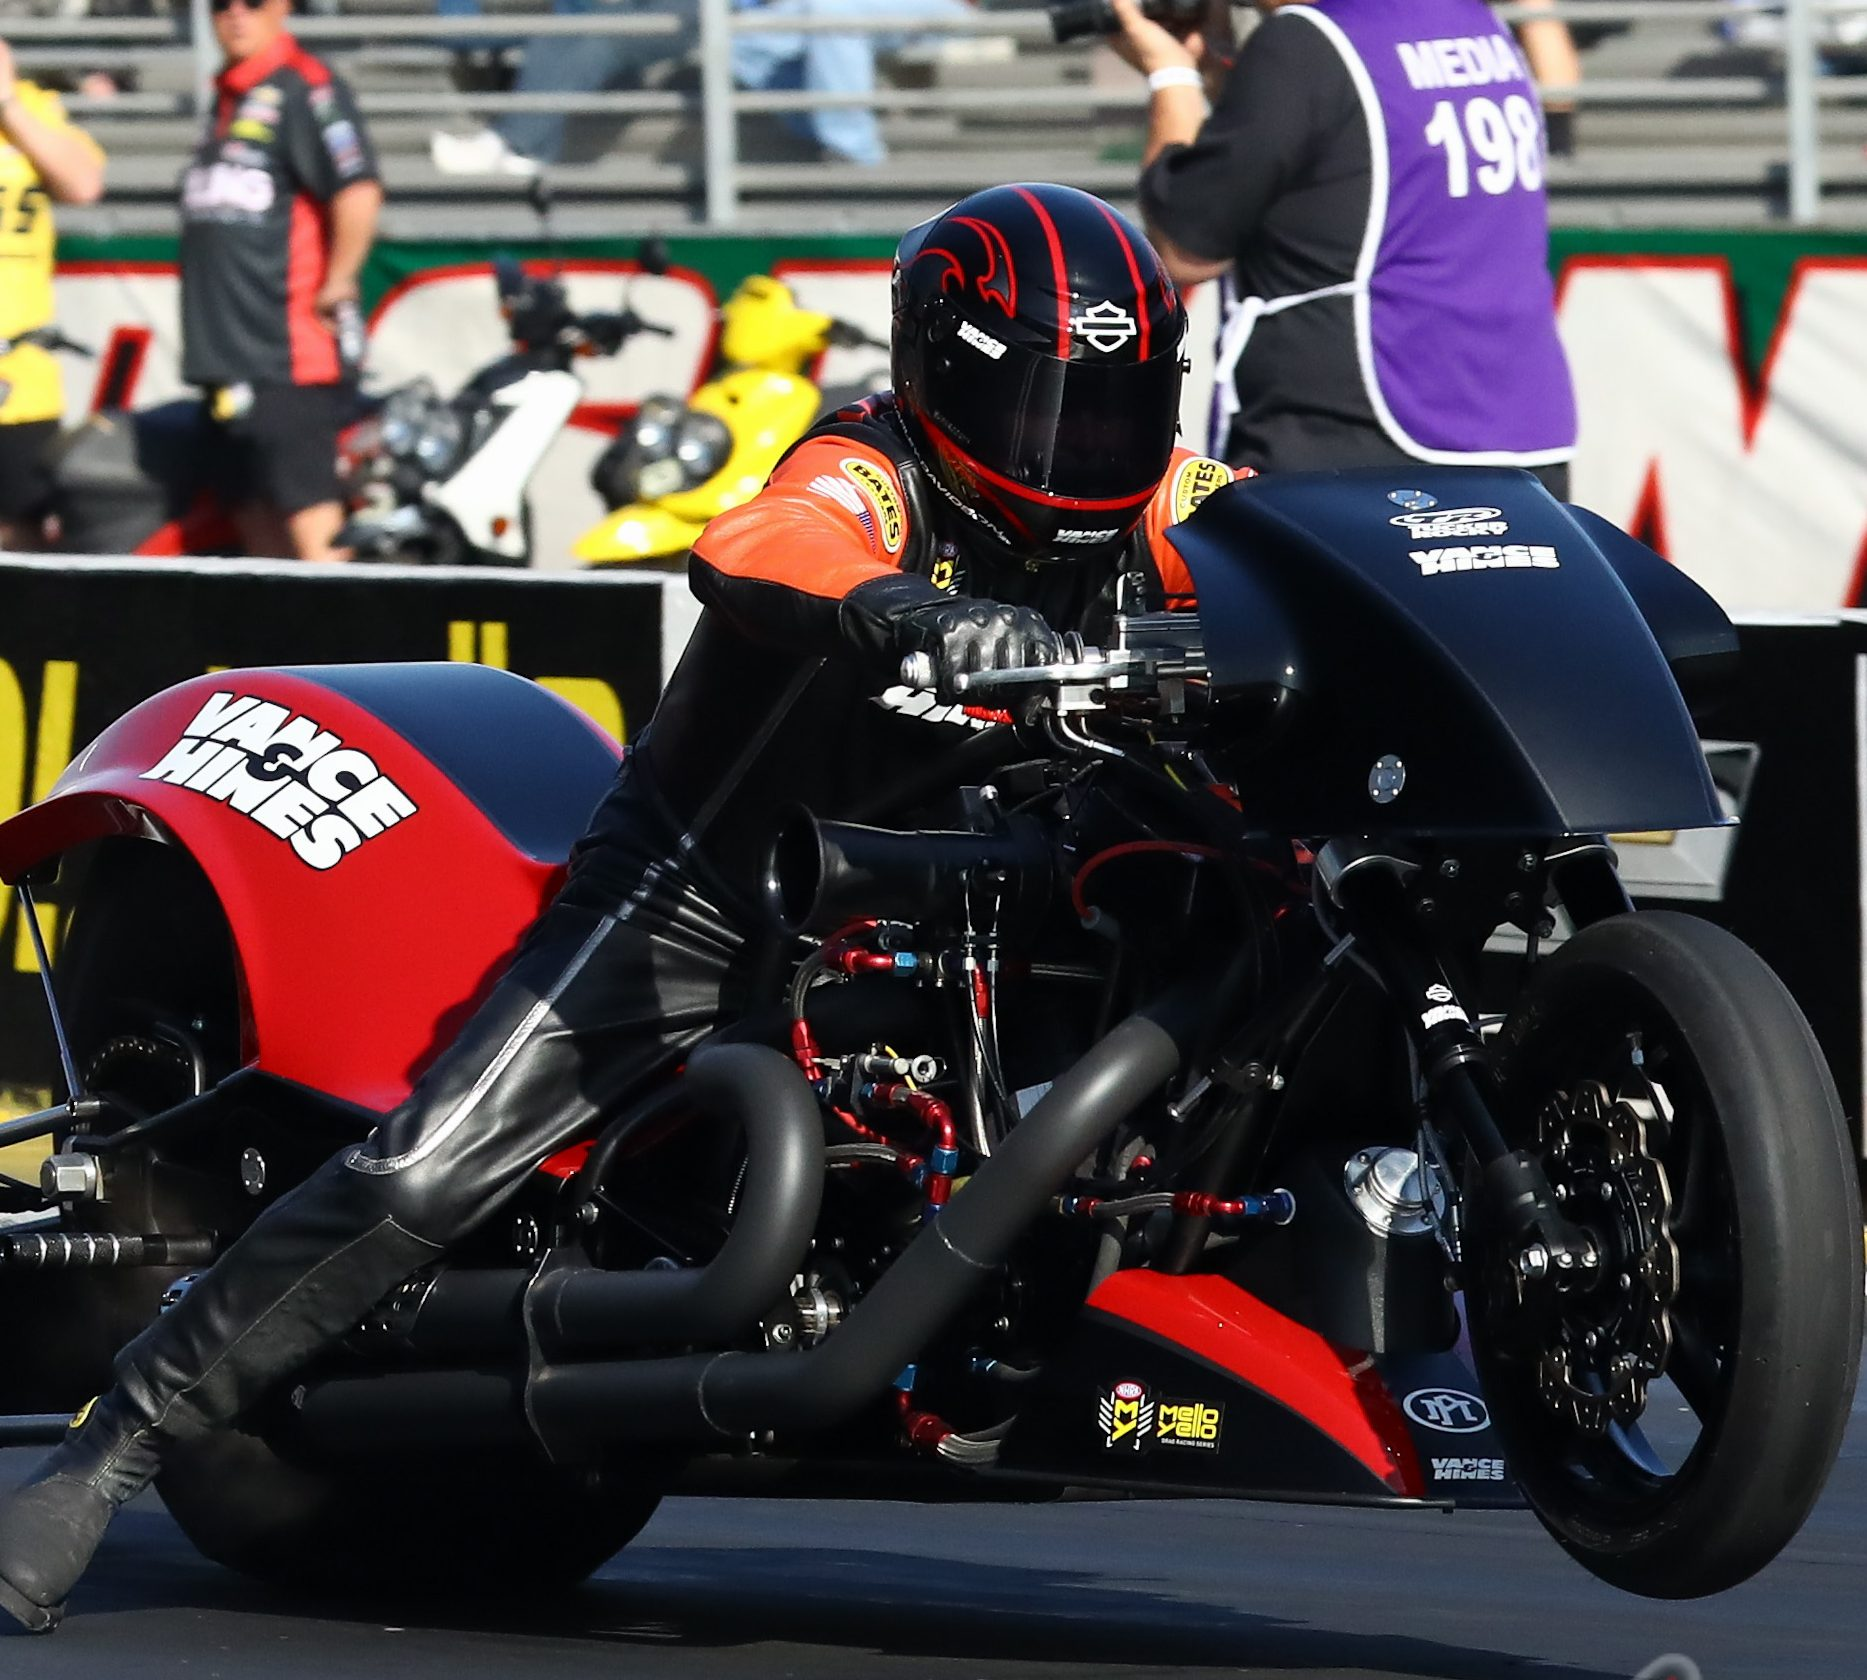 Turbo Harley Drag Race: NHRA Lucas Oil Winternationals Nitro Harley Coverage And